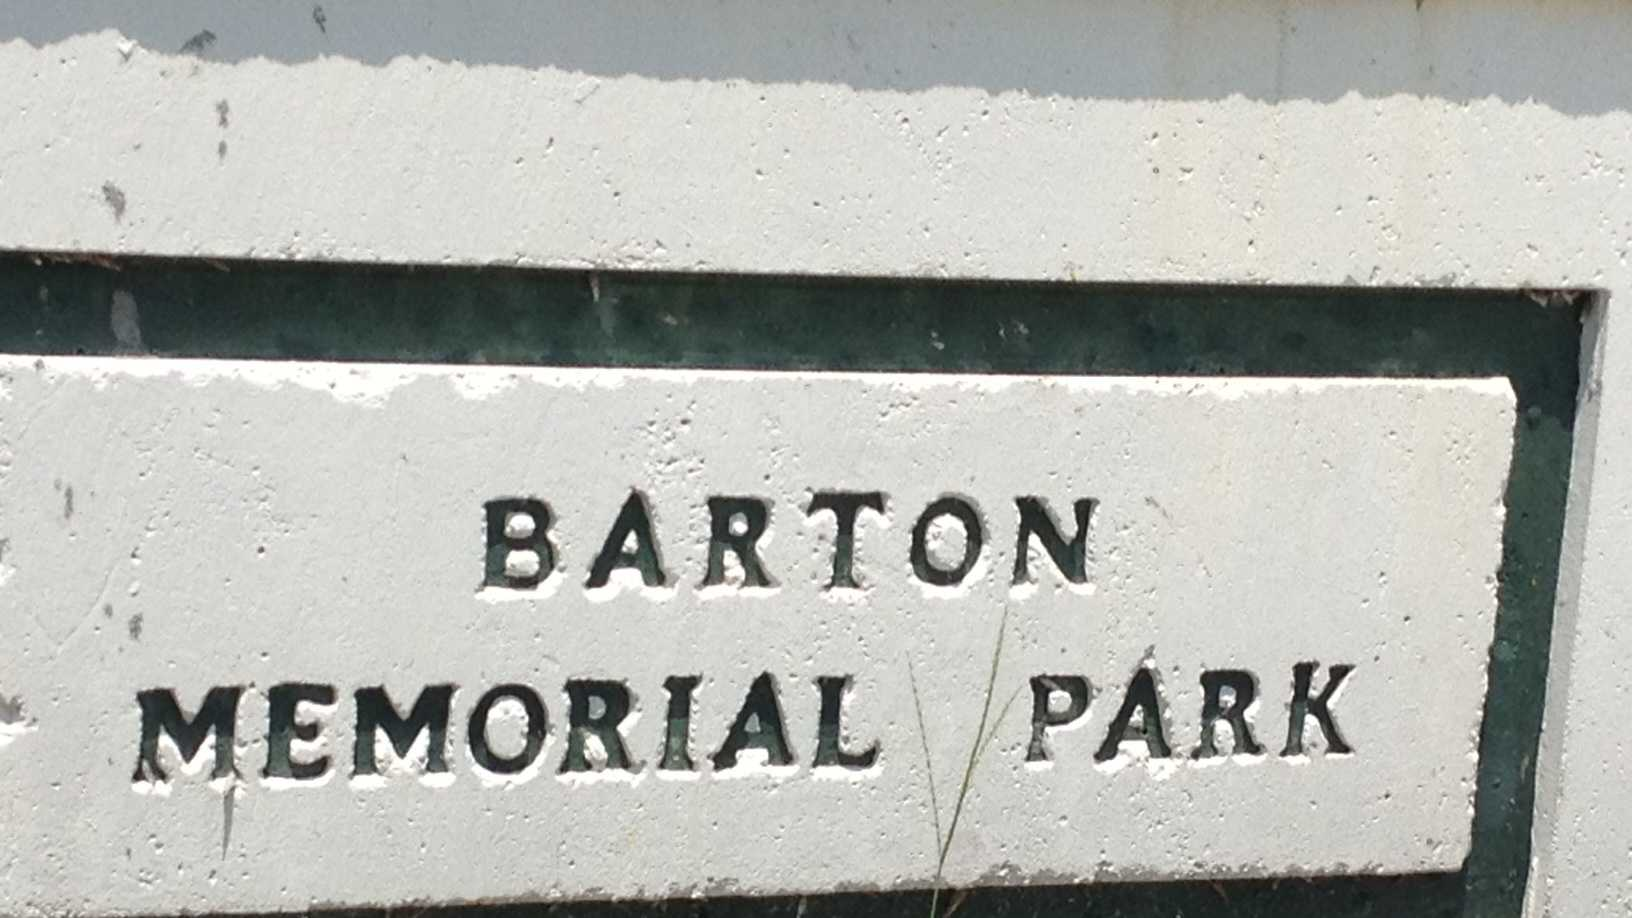 City officials are trying to determine if Barton Memorial Park is eligible to be designated as a historical site. (Angela Rozier/WPBF)